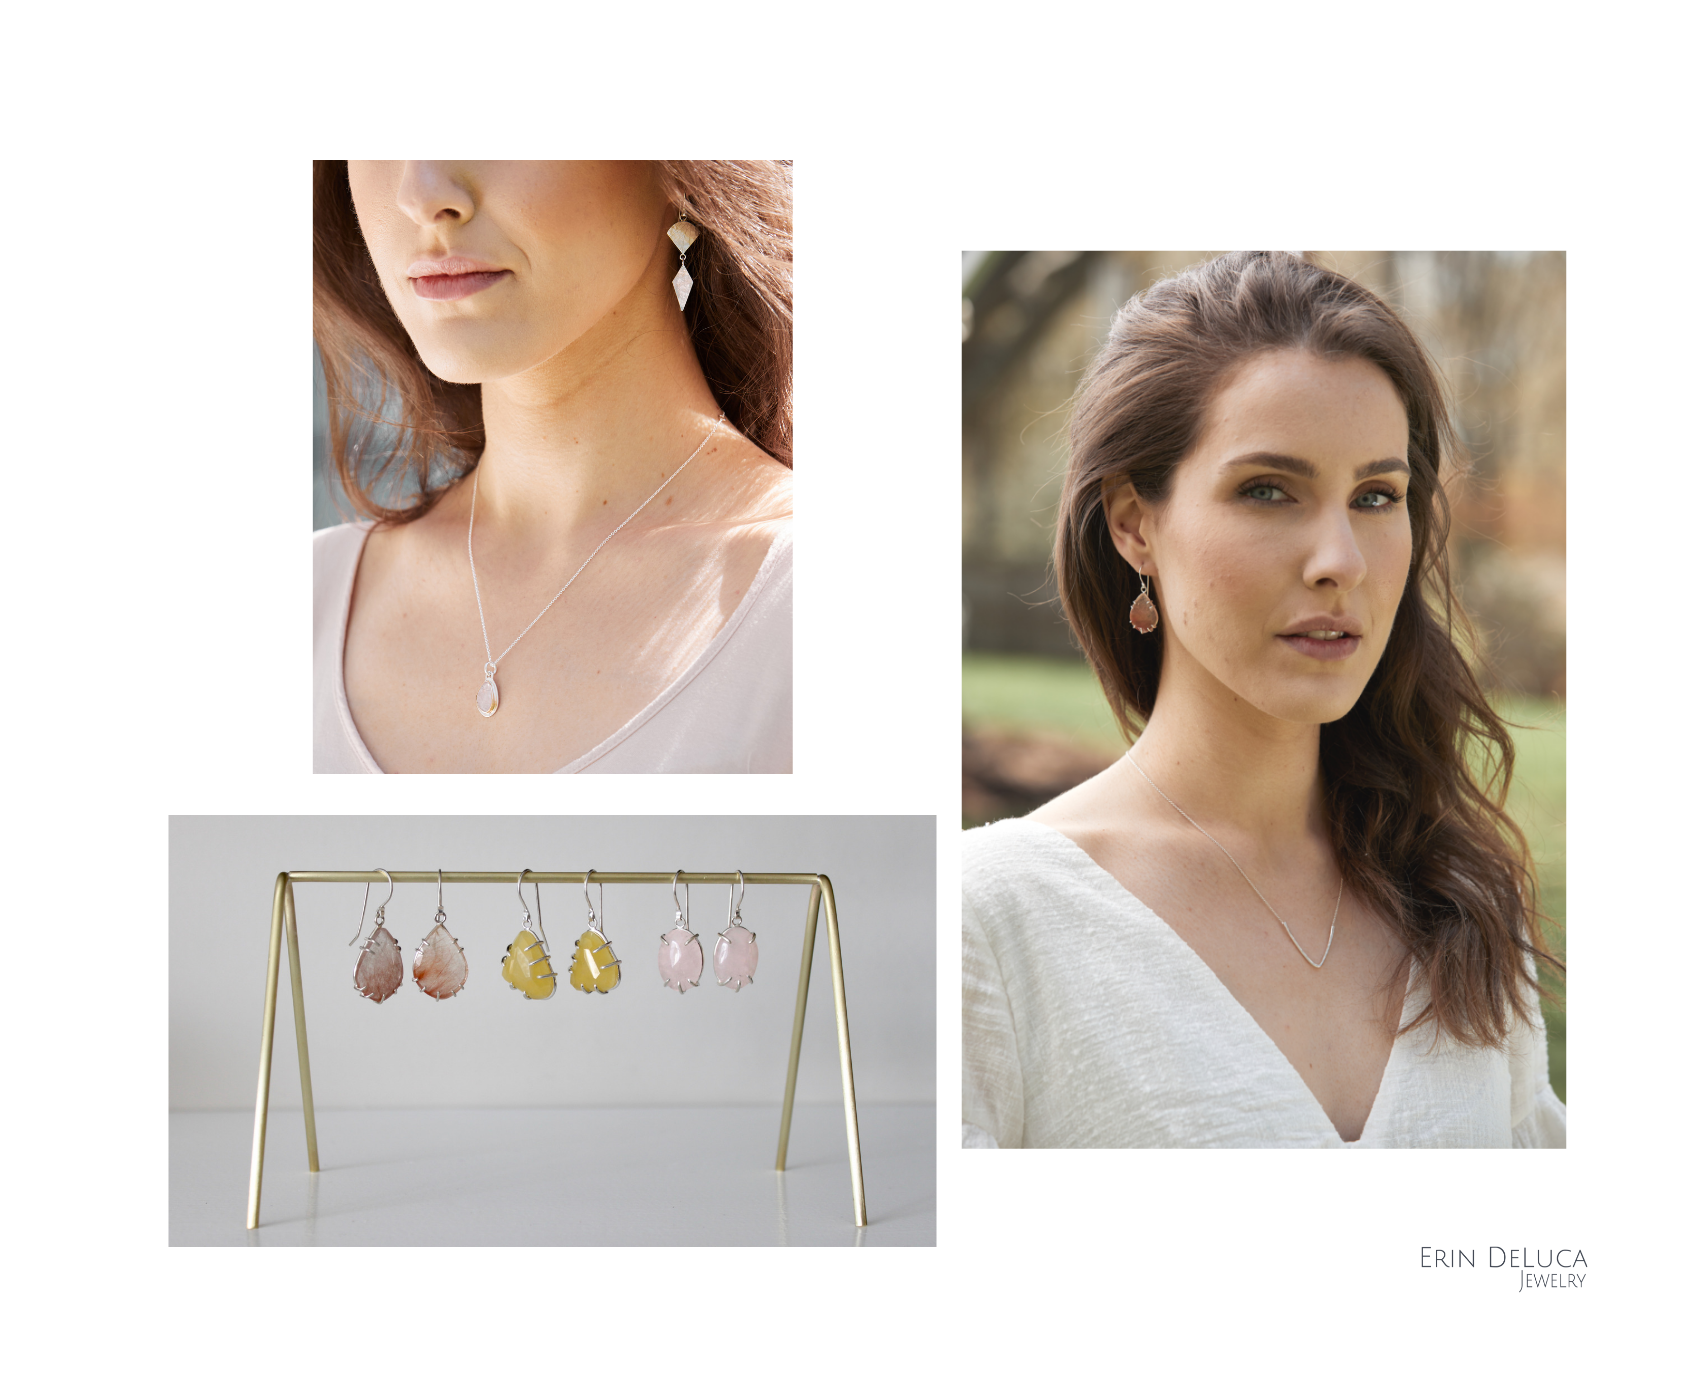 Erin DeLuca Jewelry Lookbook 8.png